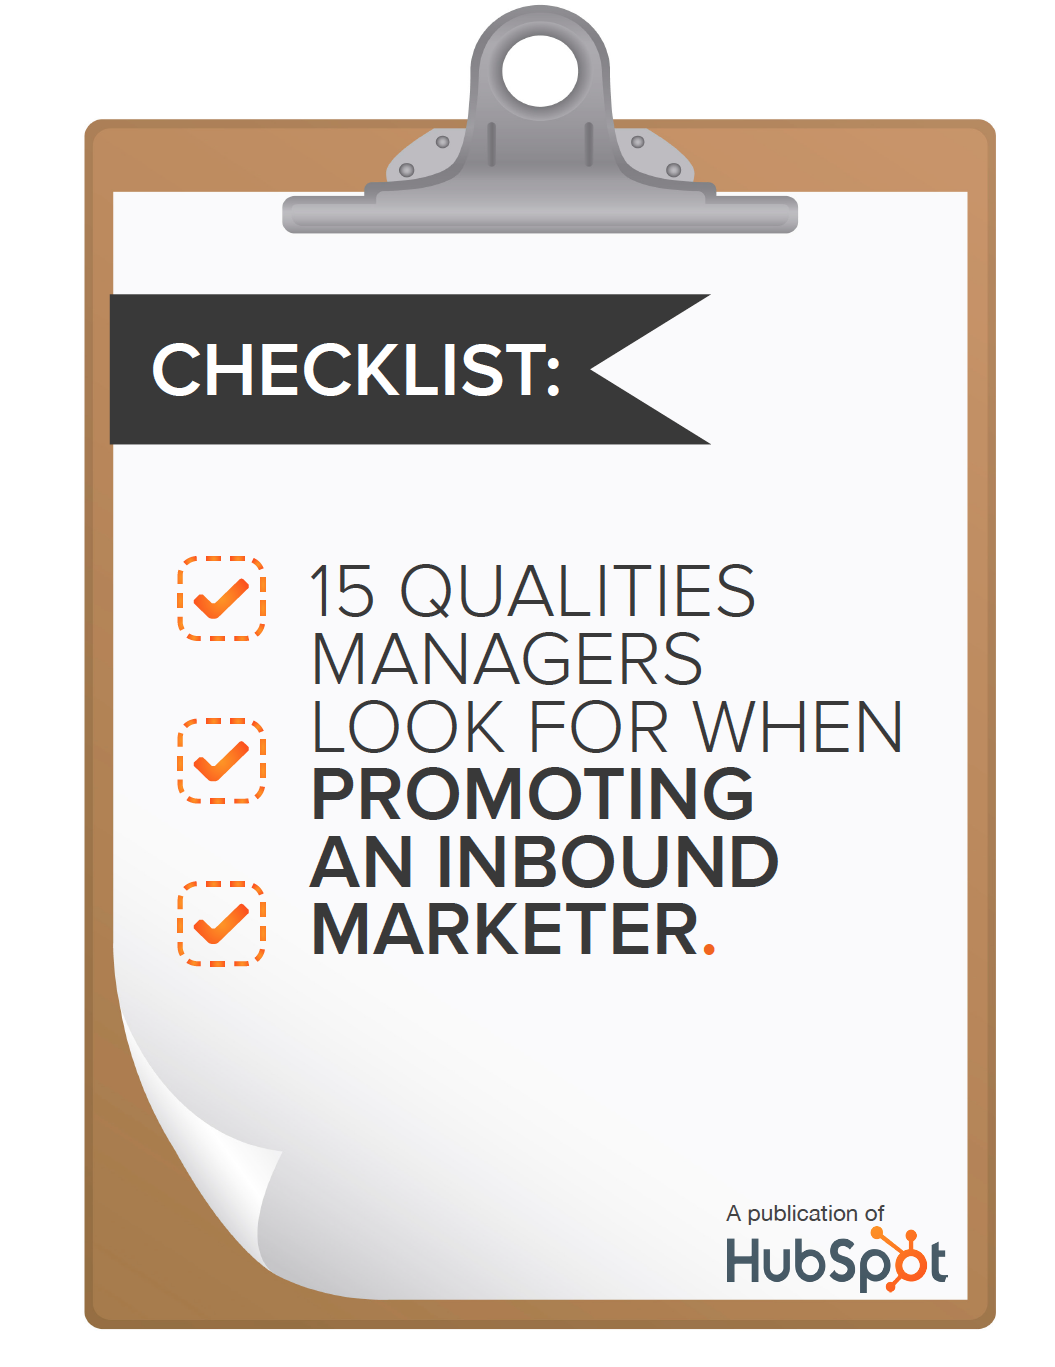 checklist-15-qualities-managers-look-for-when-promoting-an-inbound-marketer